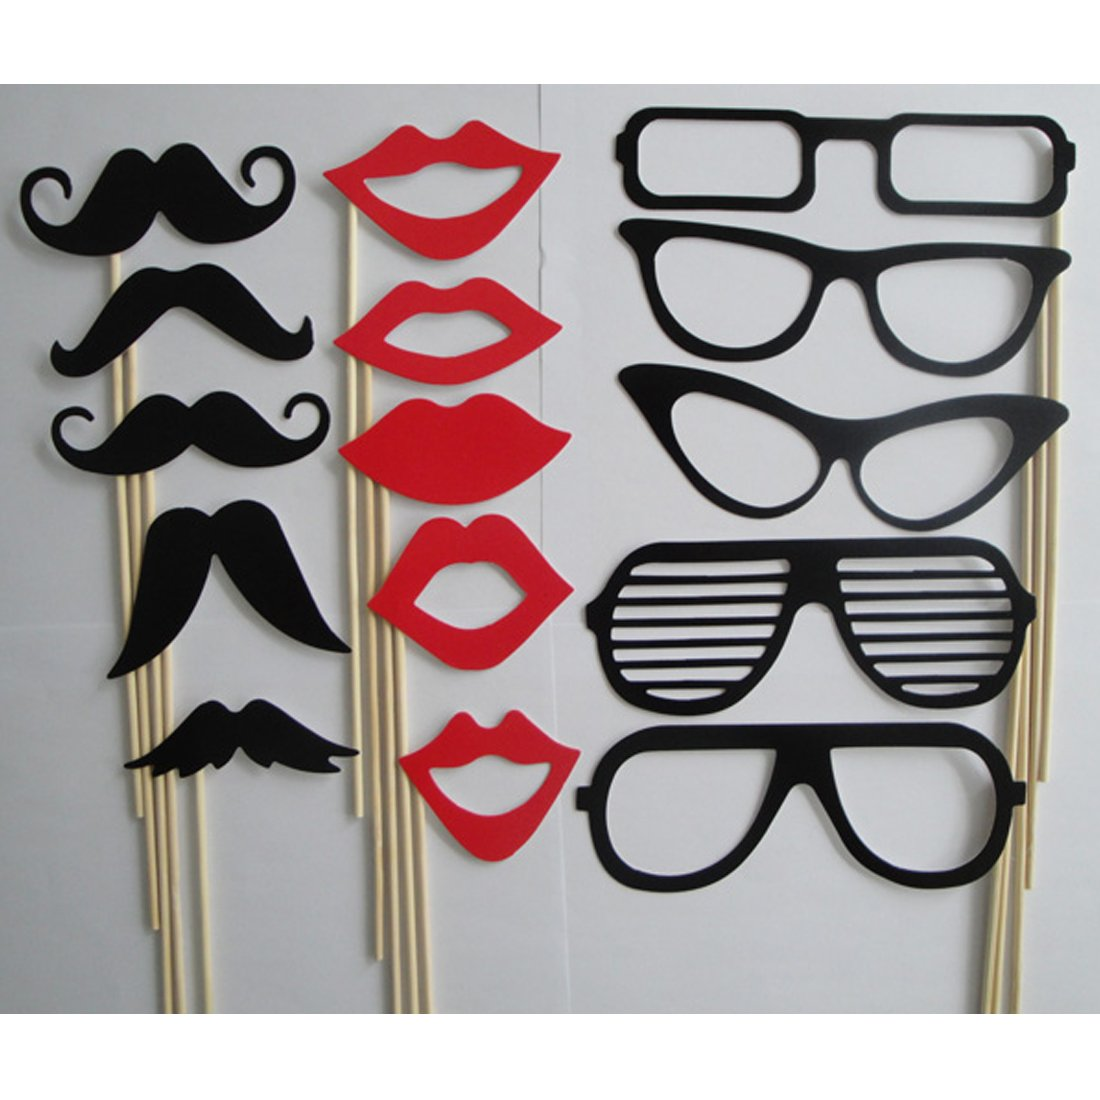 38e02194bdfd joyliveCY 15Pcs Photo Booth Props Moustache Lips Glasses On A Stick Party  Birthday Wedding  Amazon.co.uk  Kitchen   Home